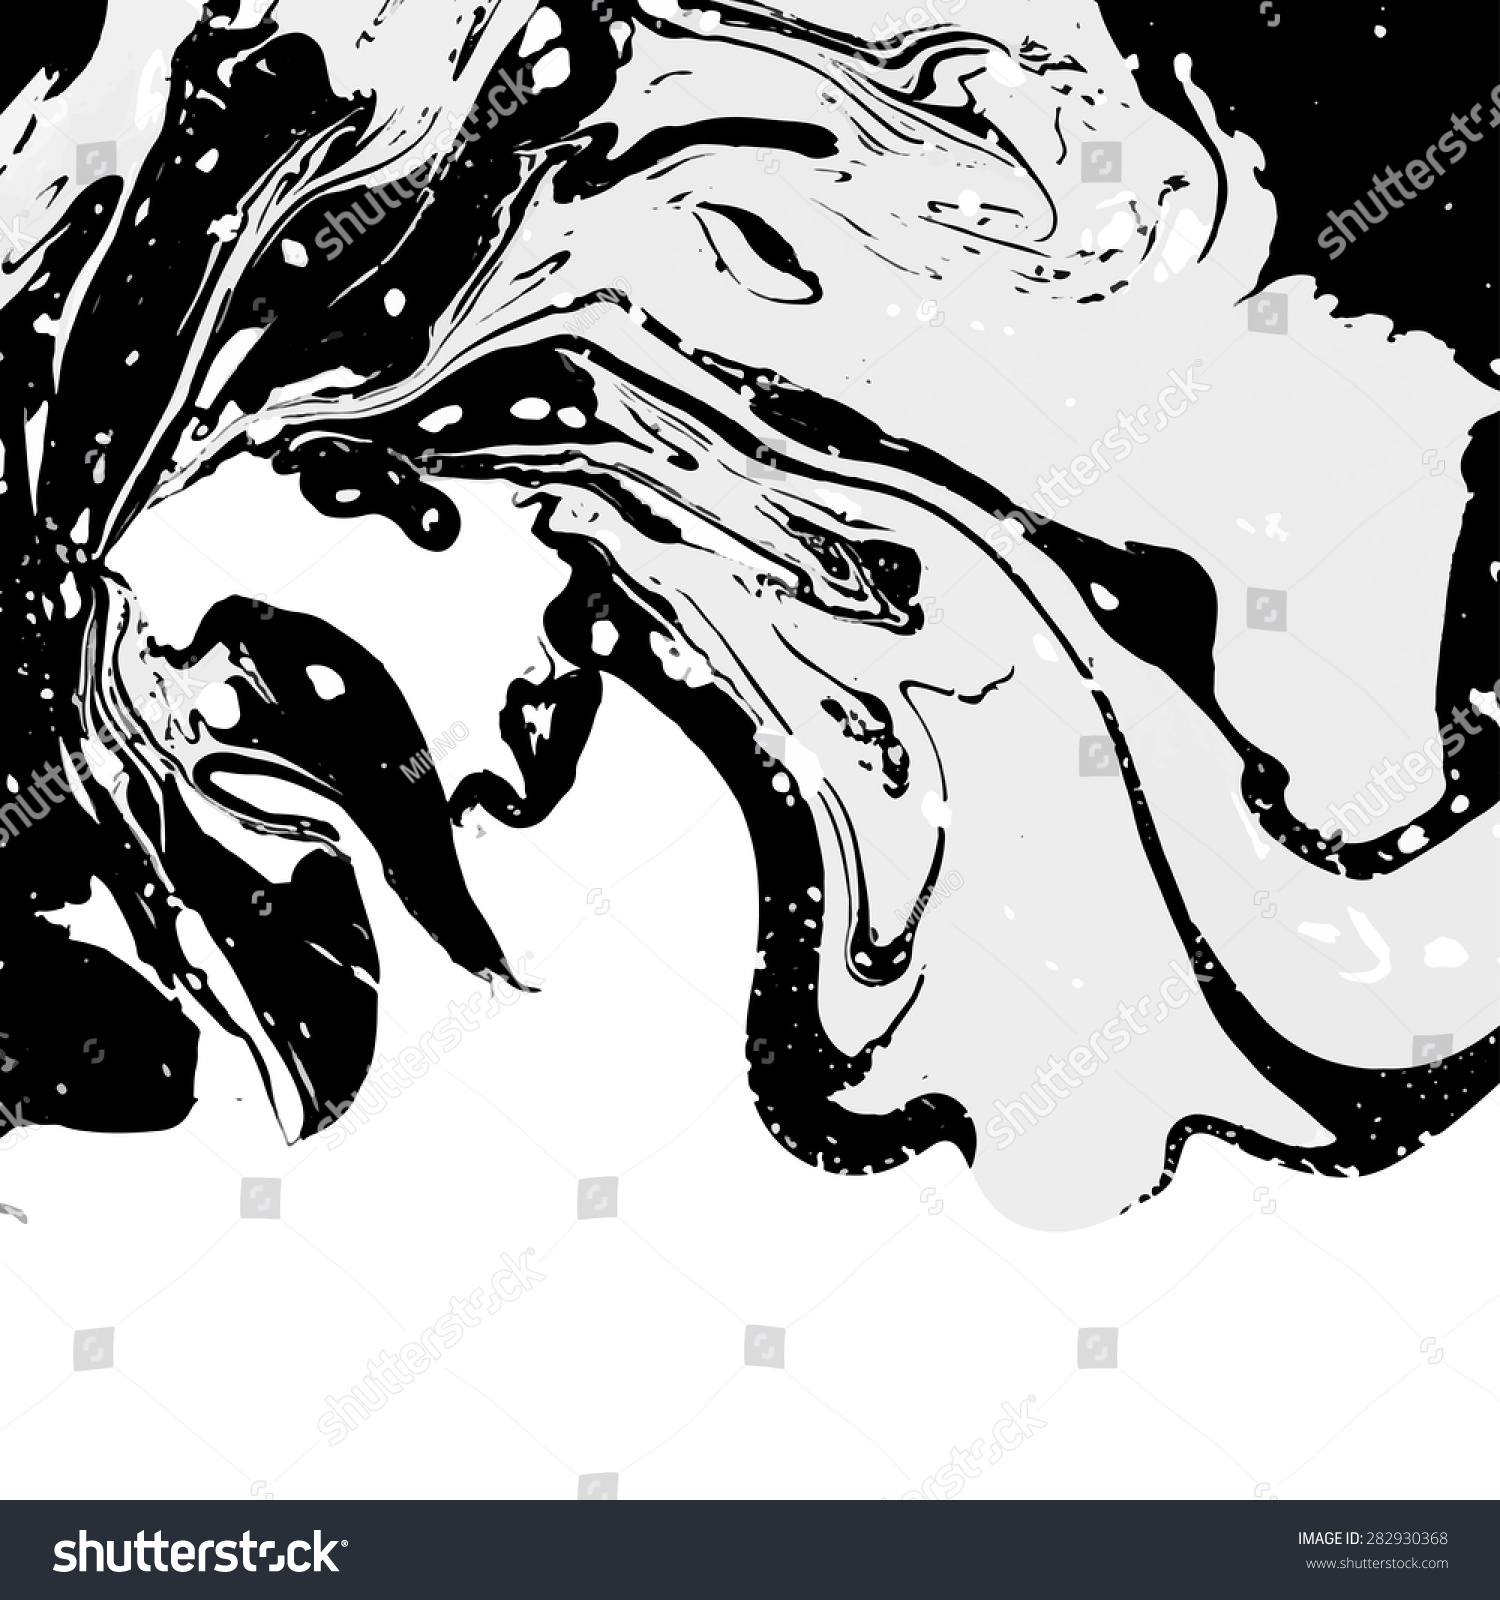 Marble clipart black and white 7 » Clipart Station.